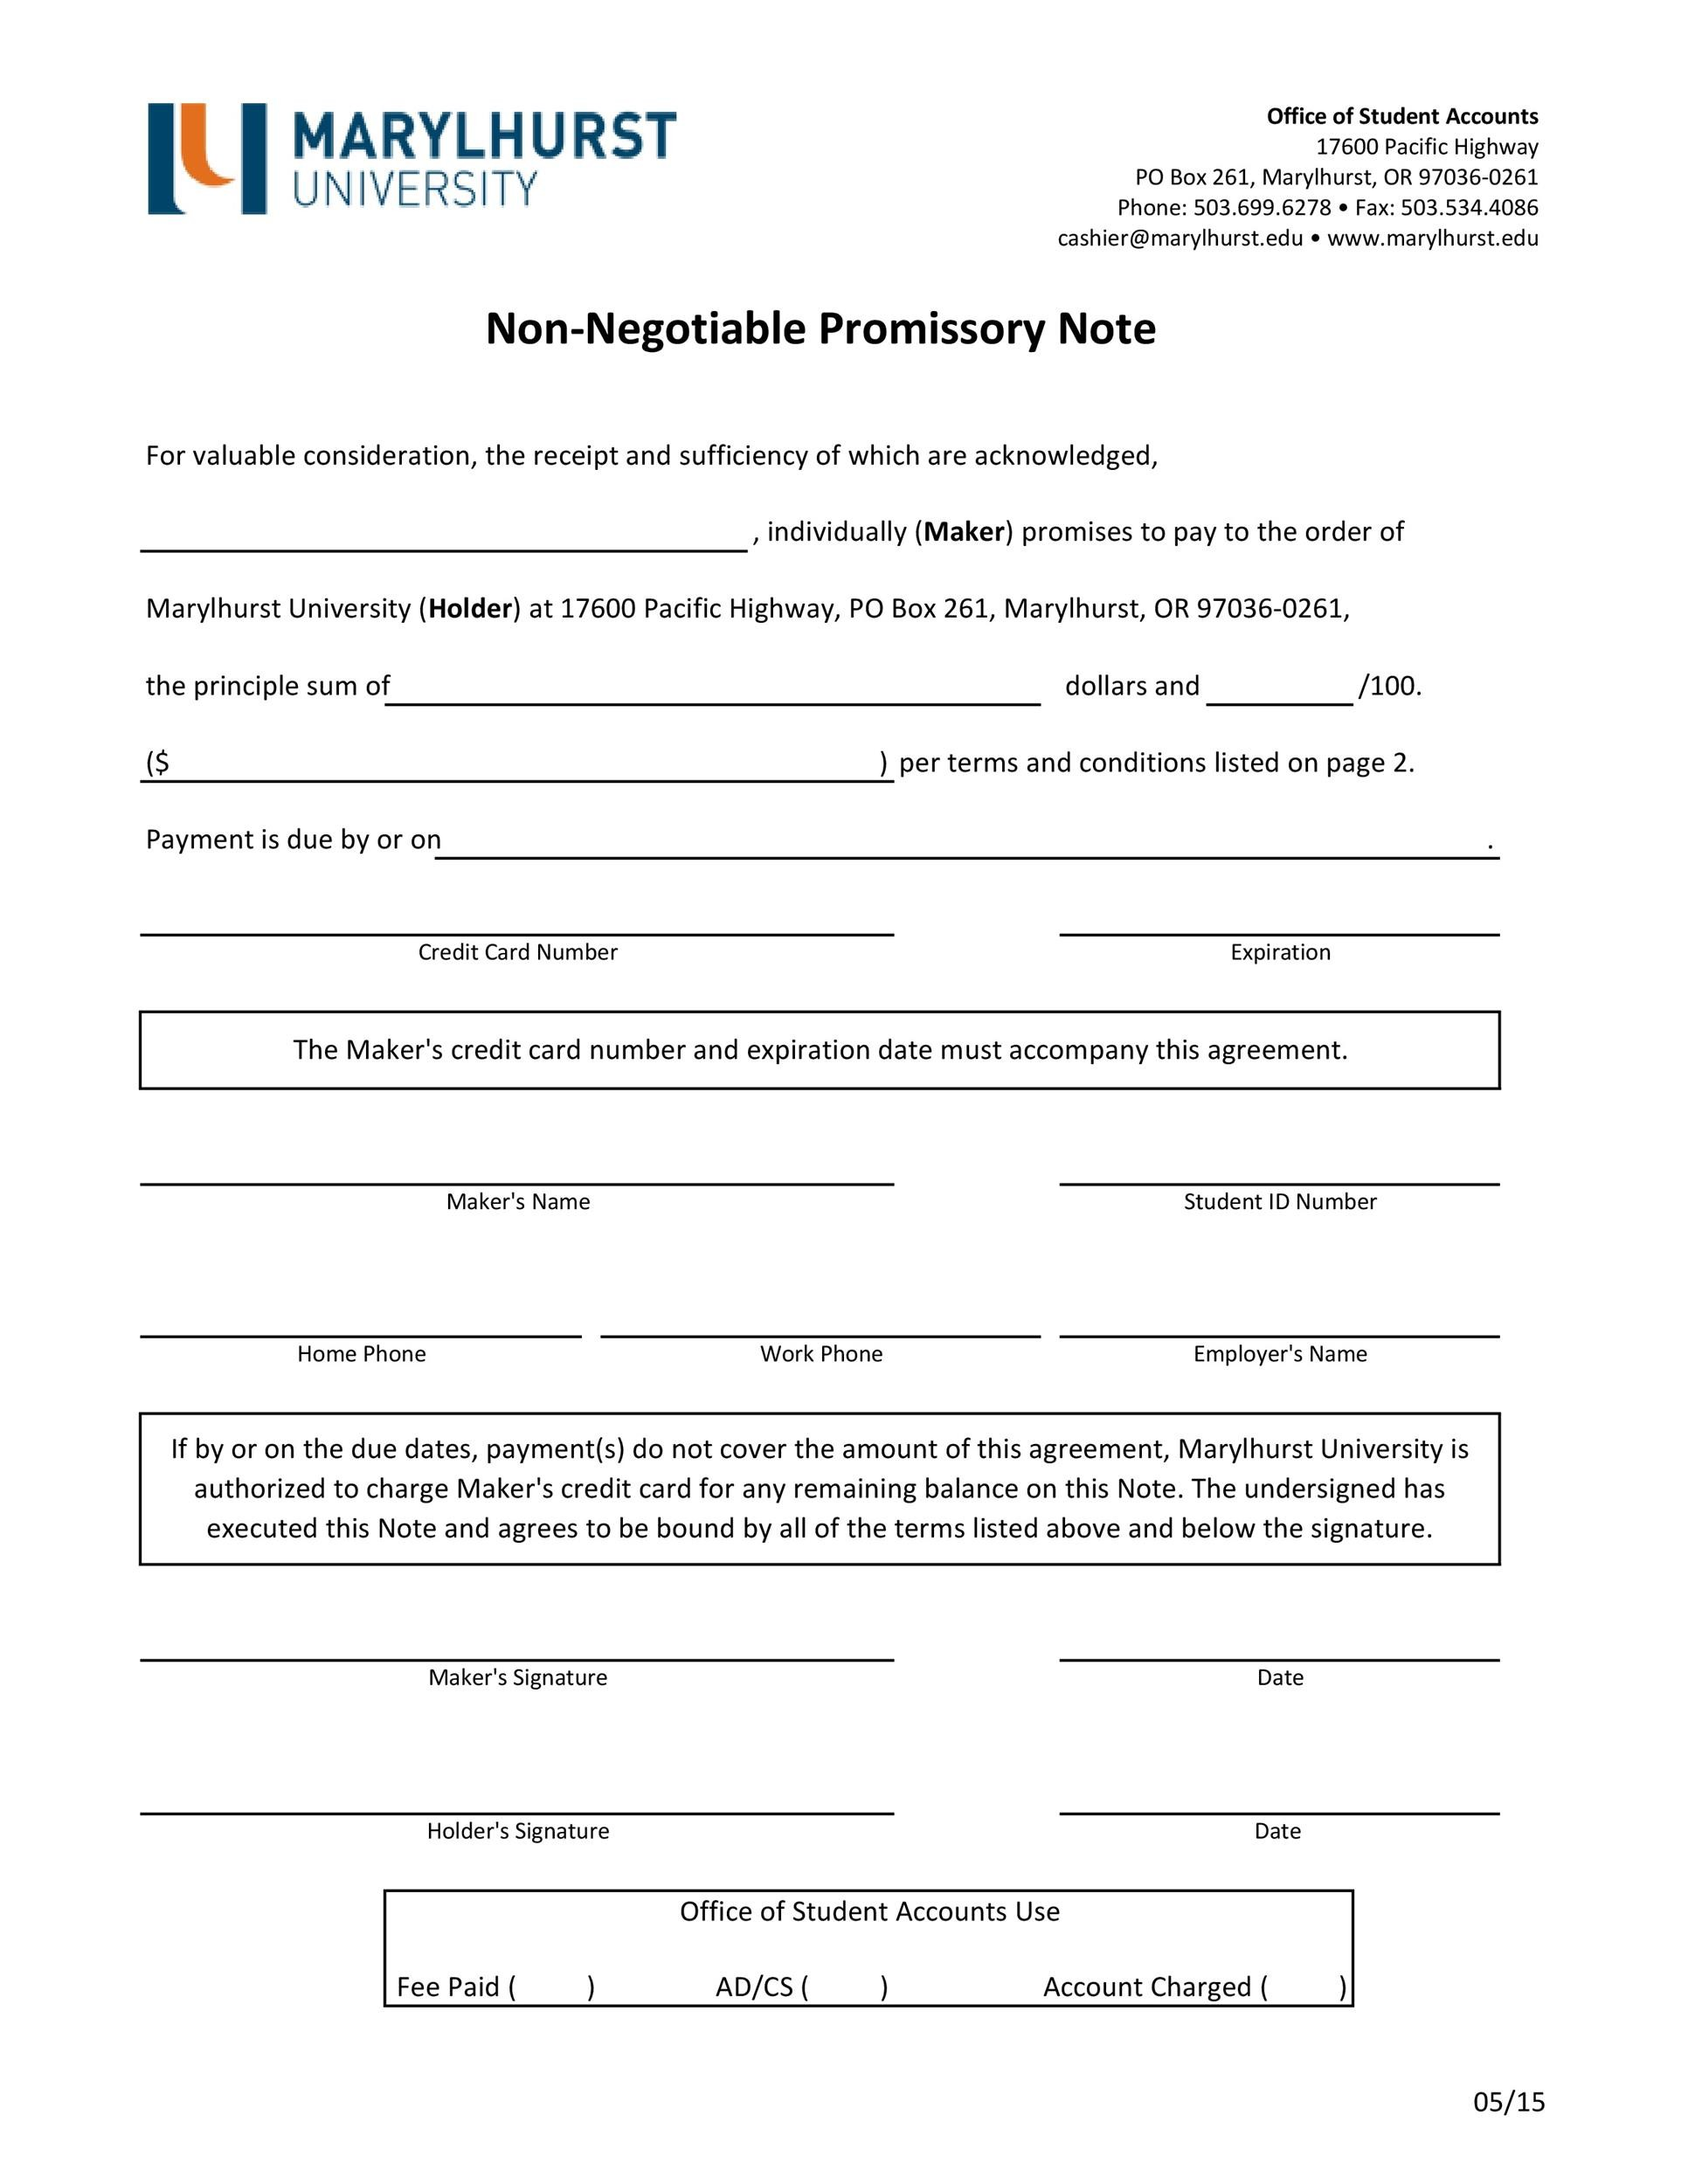 Exceptional Printable Promissory Note Template 04 For Free Download Promissory Note